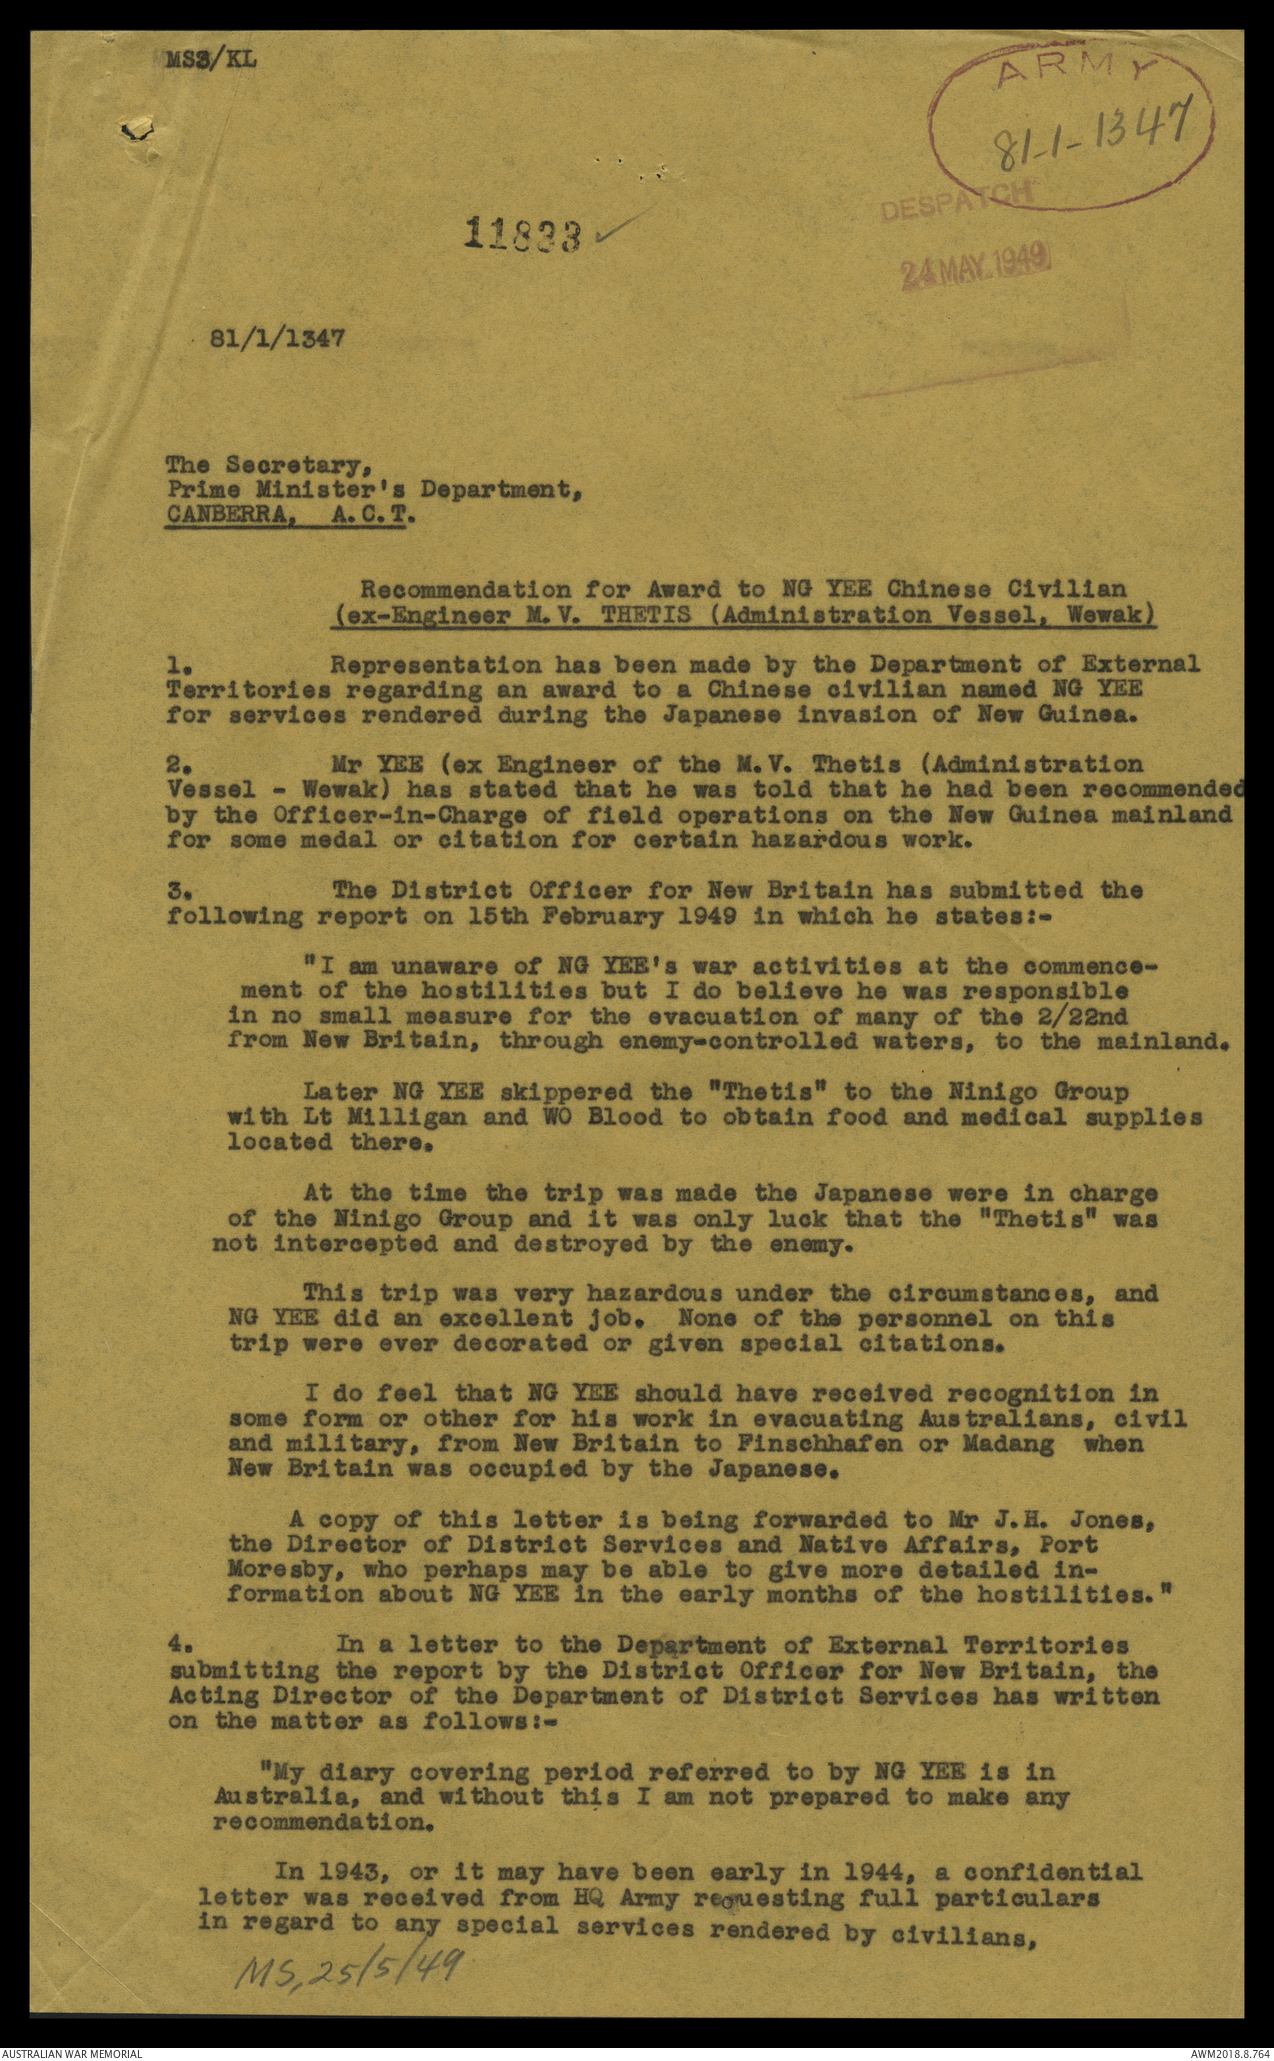 AWM119 243 - Recommendation for award to N G Yee (MV Thetis